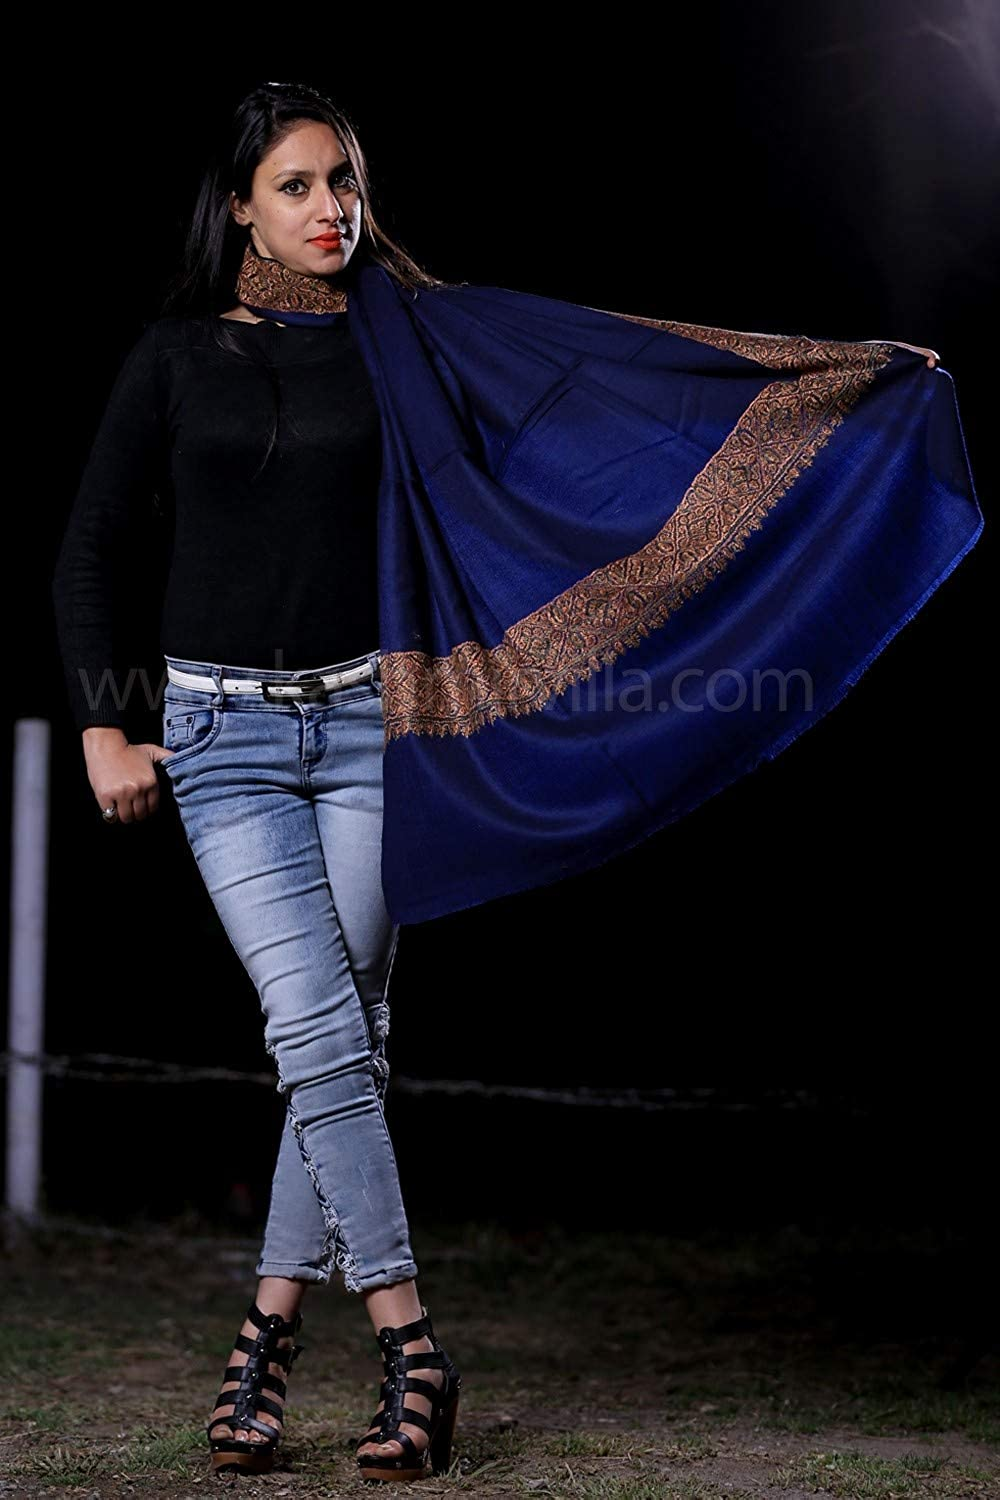 NavyBlue Colour SemiPashmina Sozni Shawl With Beautiful Border Owning A Unique Accessory.